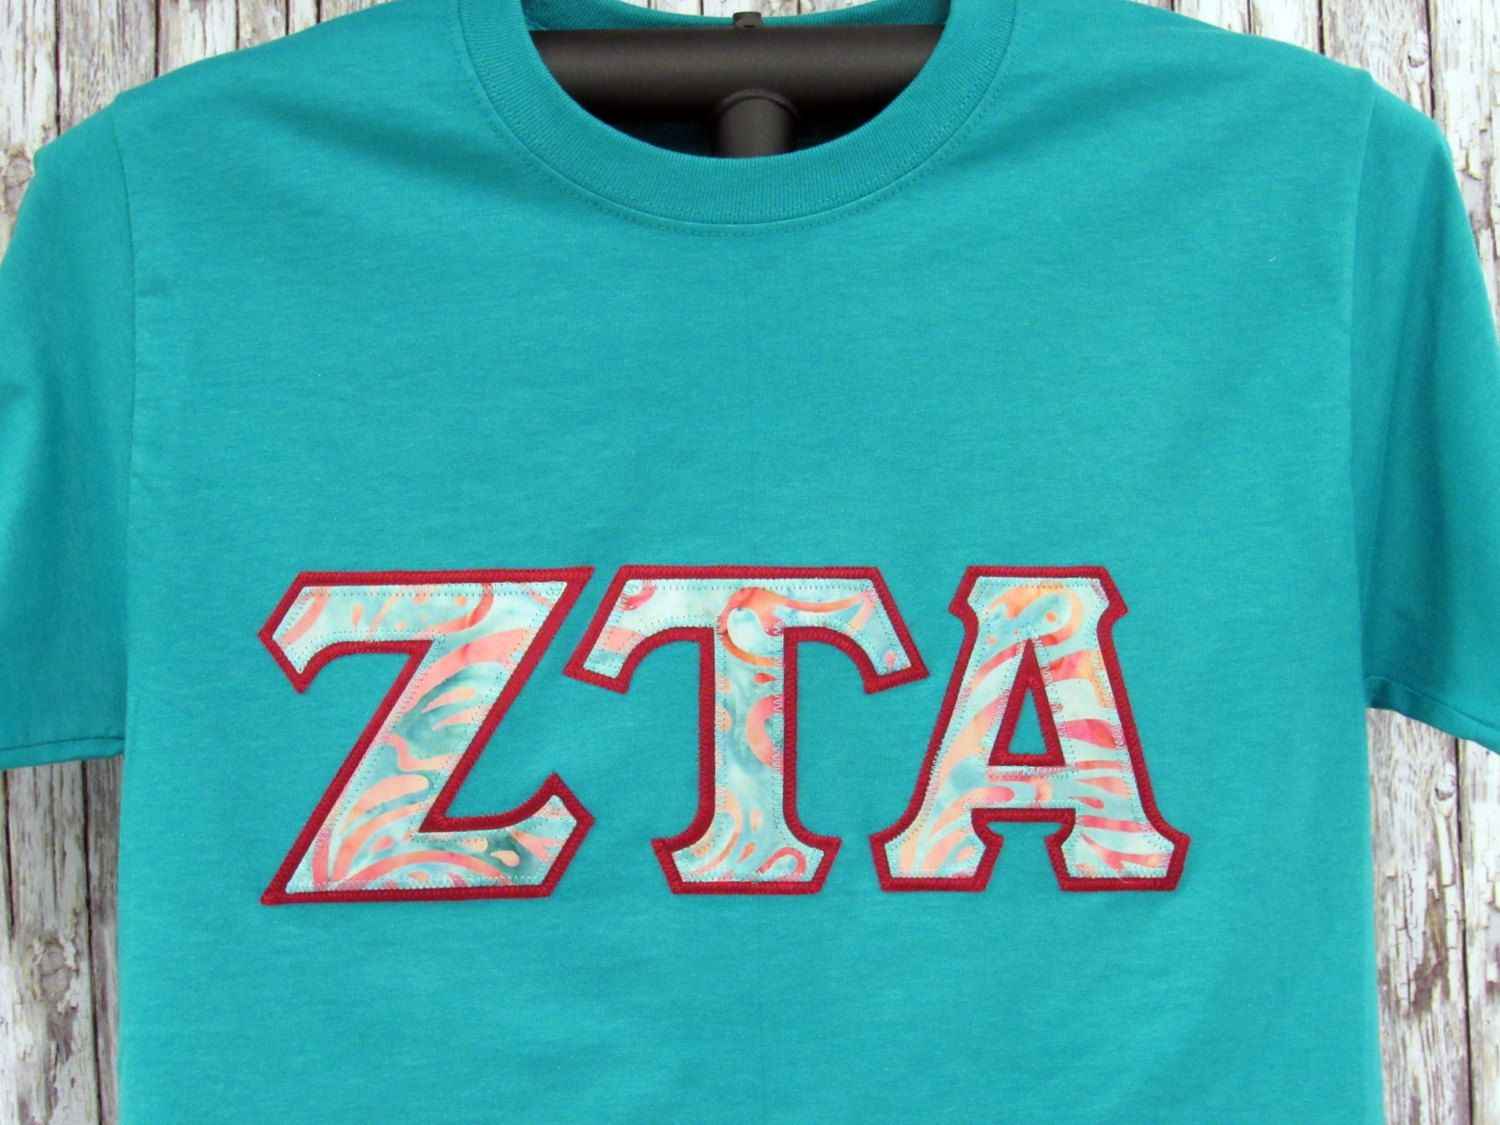 jade short sleeve shirt with batik print sorority double stitched letters shirt by mainstreetsorority on etsy